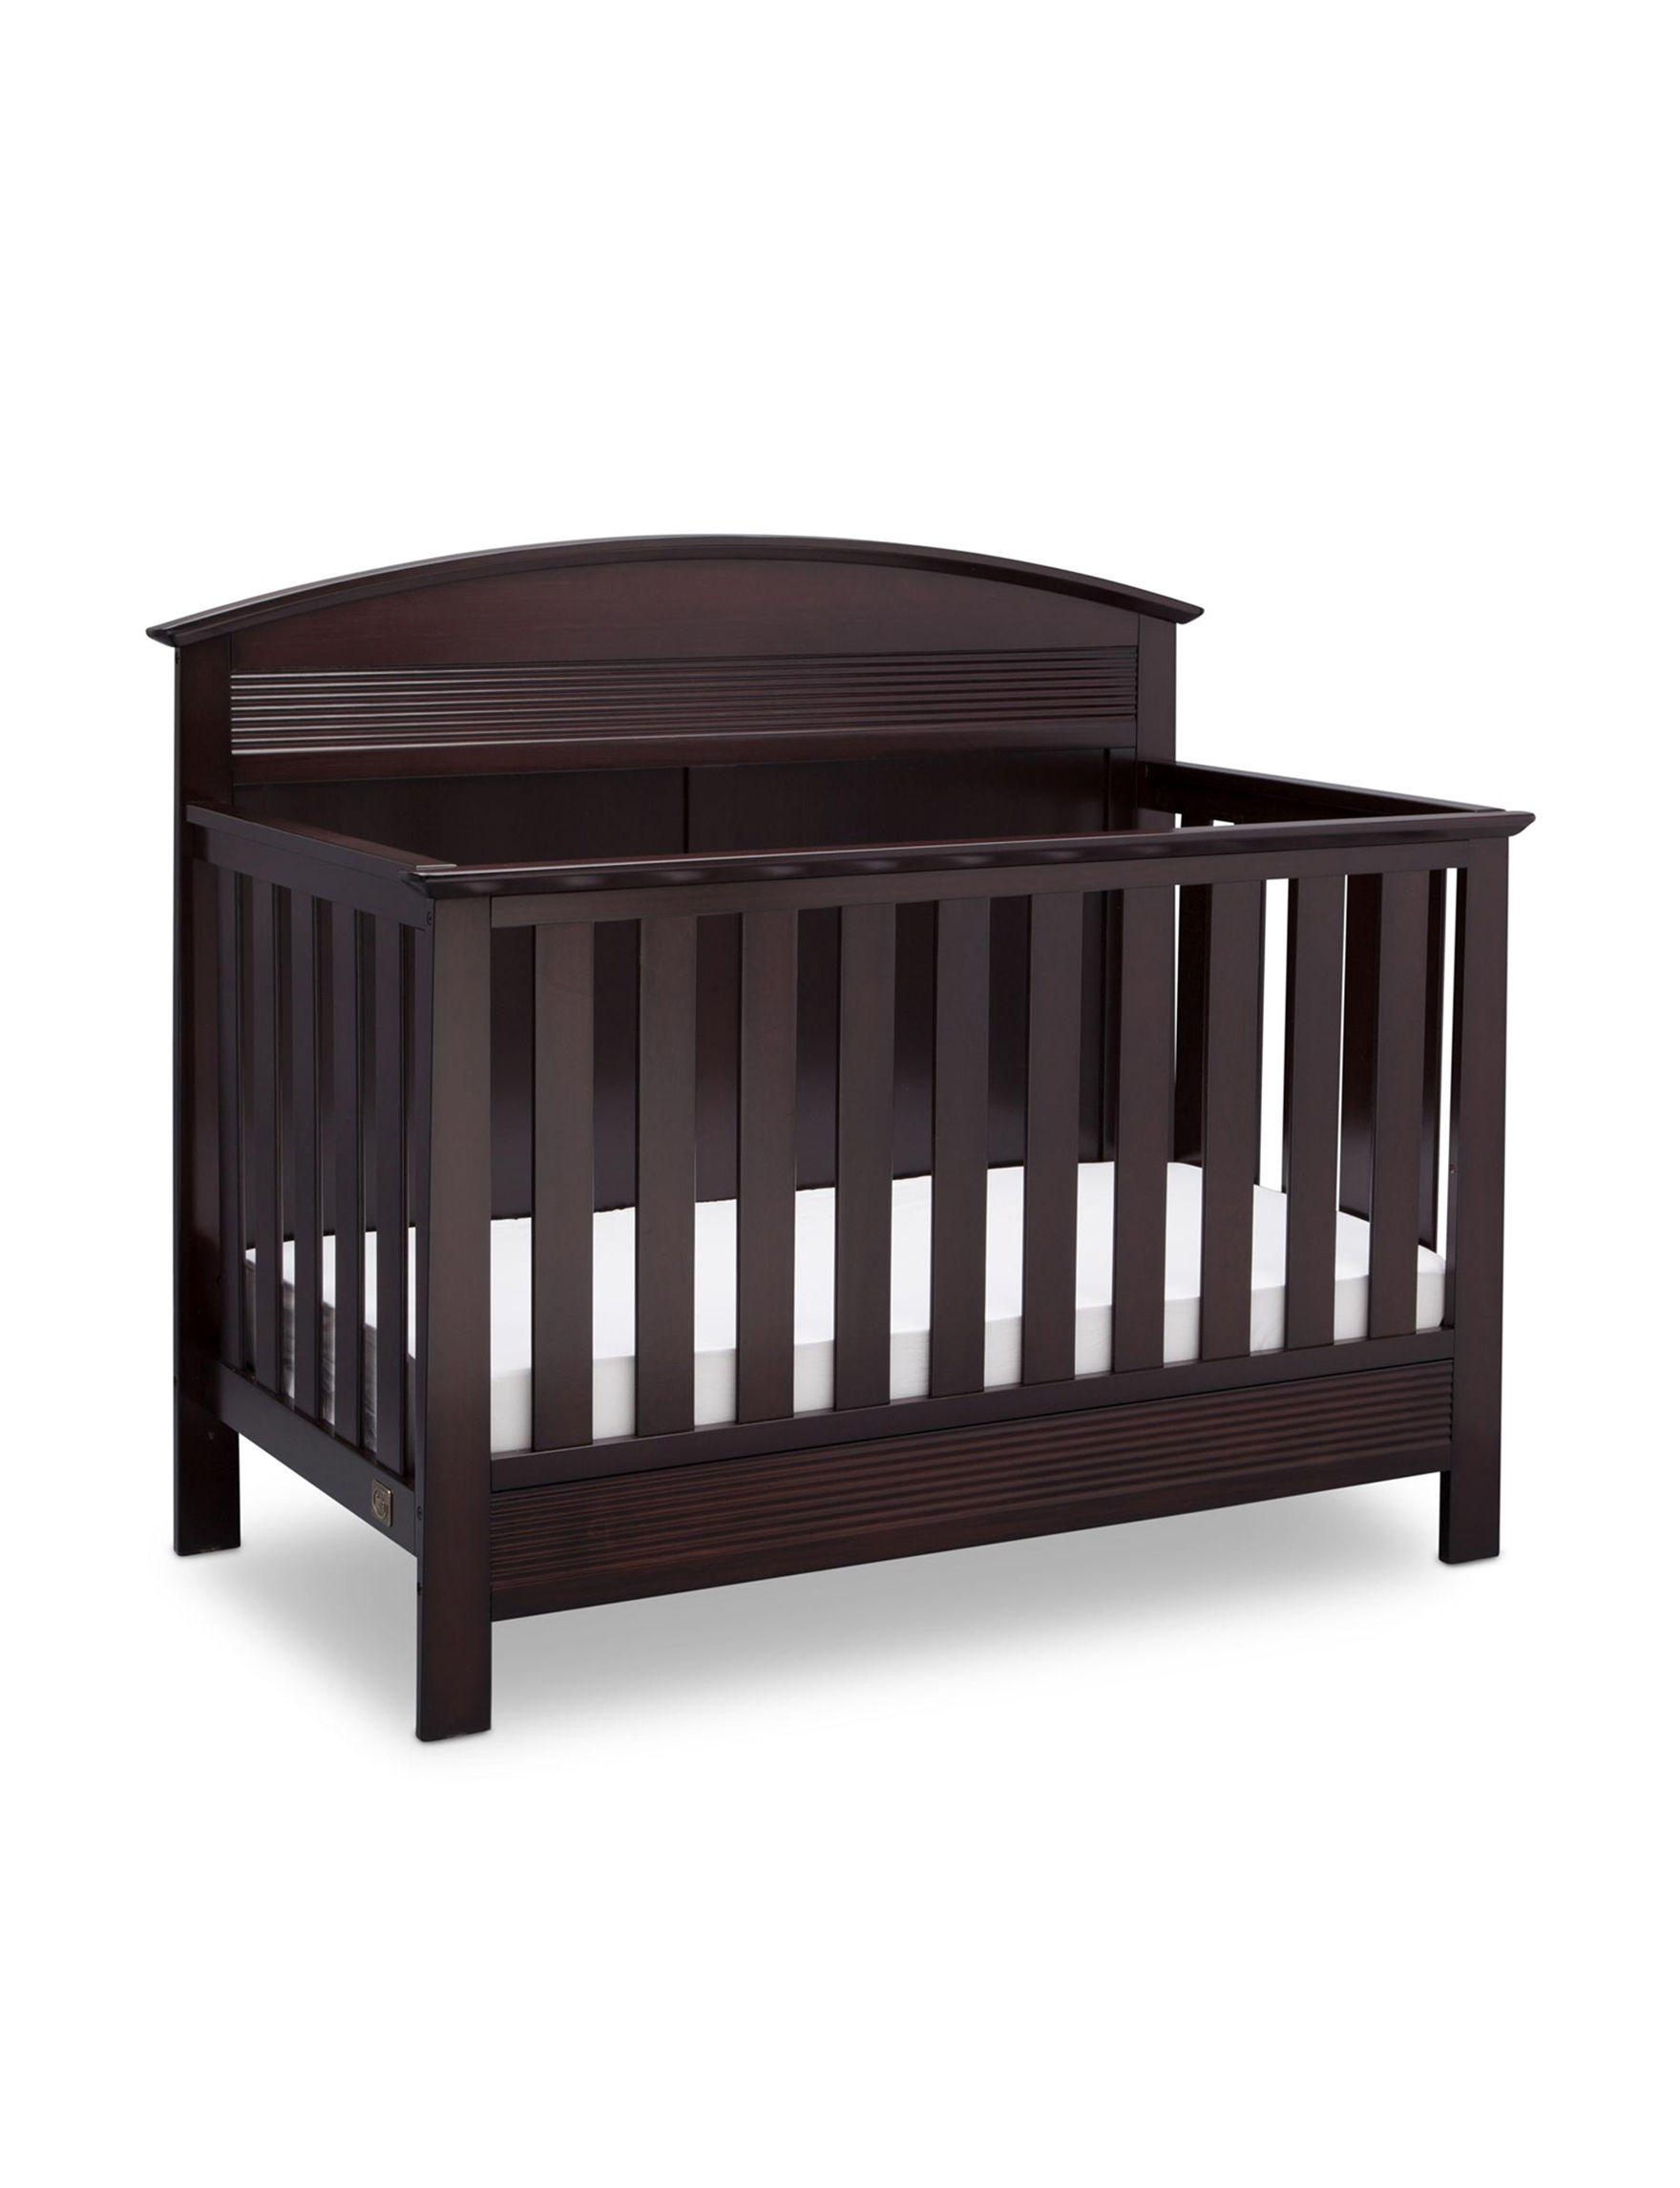 Serta Dark Chocolate Cribs Bedroom Furniture